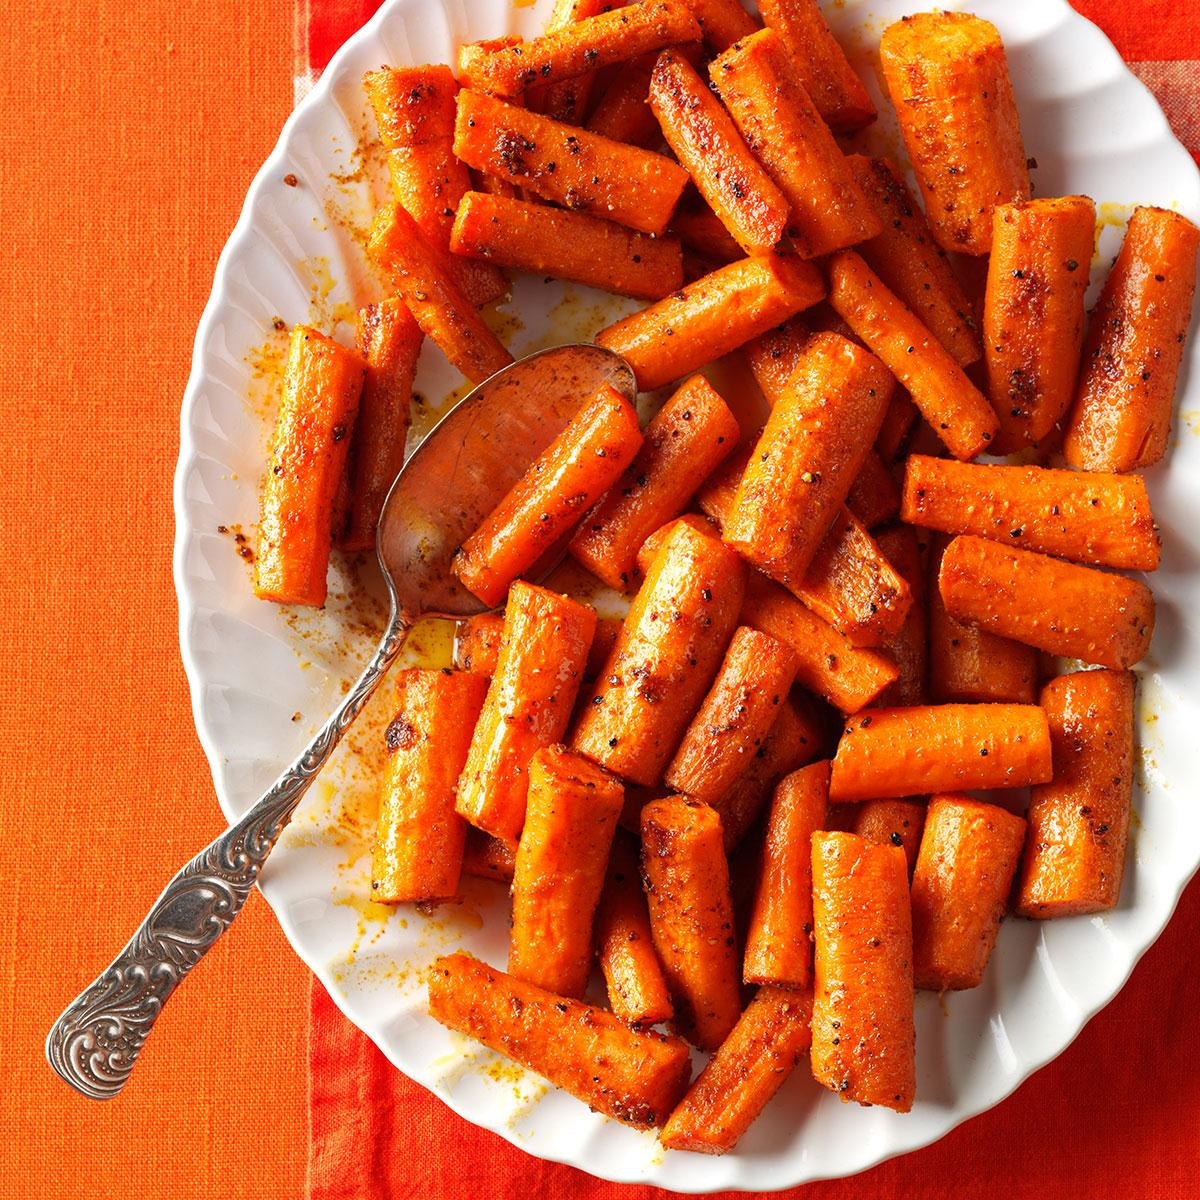 Oven-Roasted Spiced Carrots Recipe